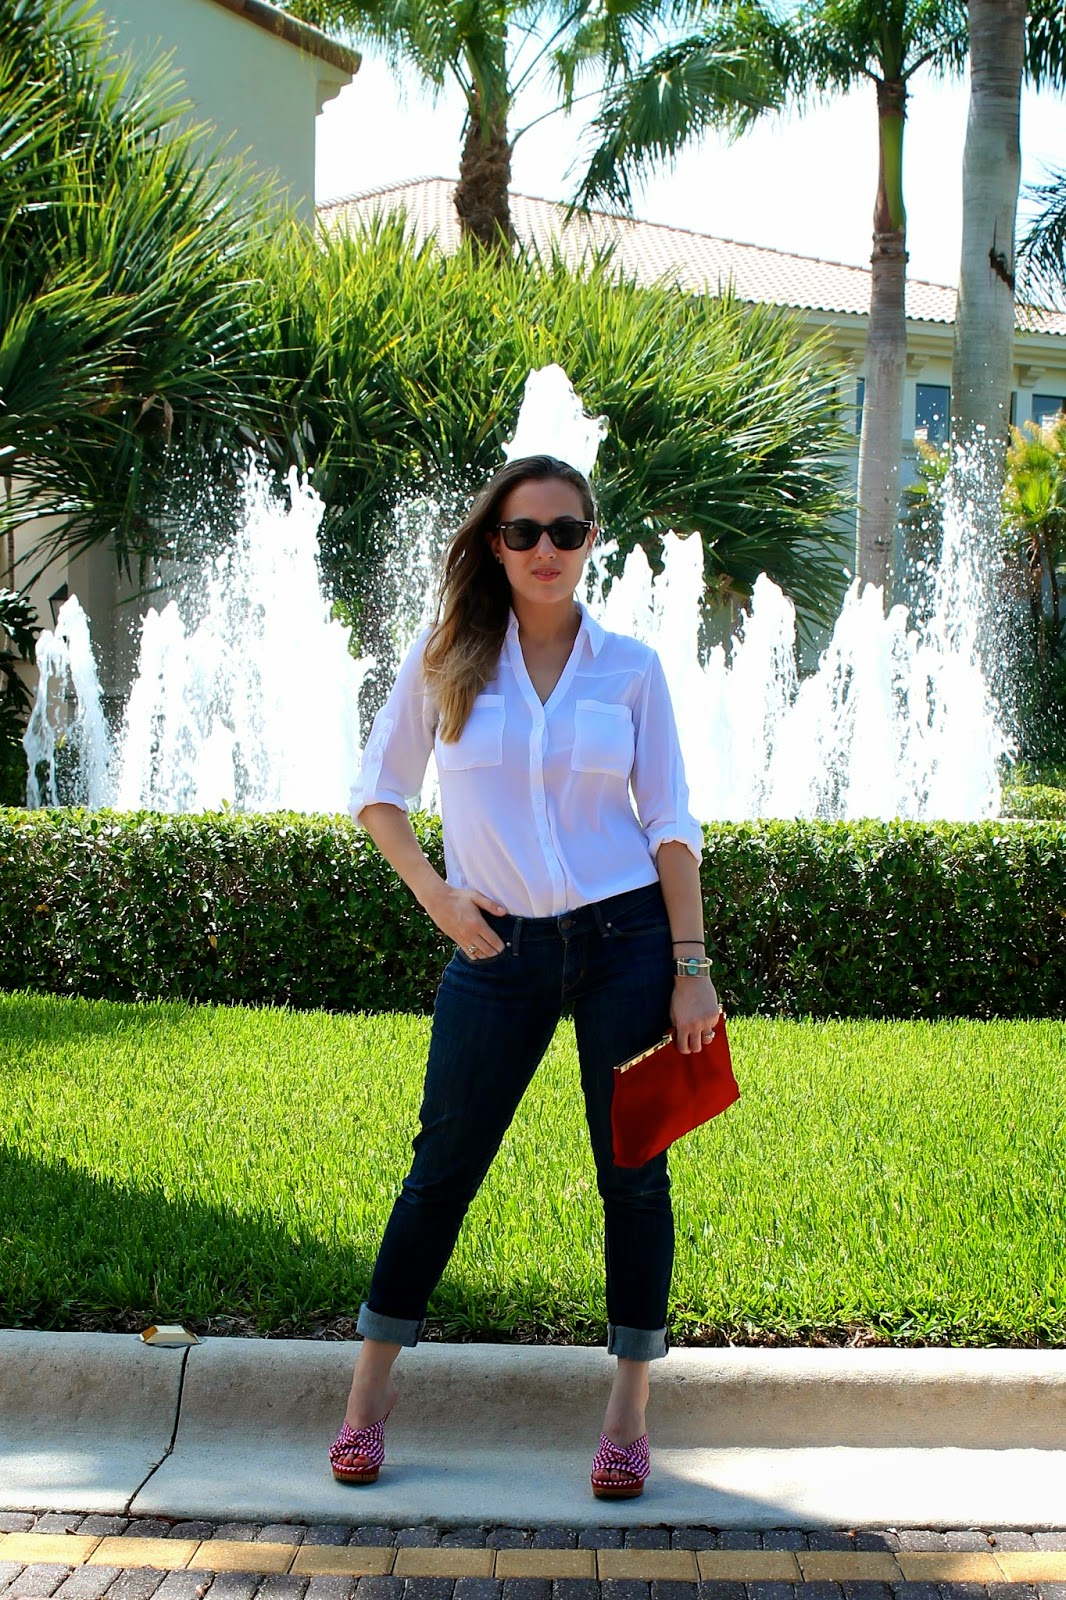 Express, Levi's, Ray-Ban, vintage, Kate Spade, Guess, classic, patriotic, prep, Palm Beach, Miami, style, fashion, what I wore, lookbook, ootd